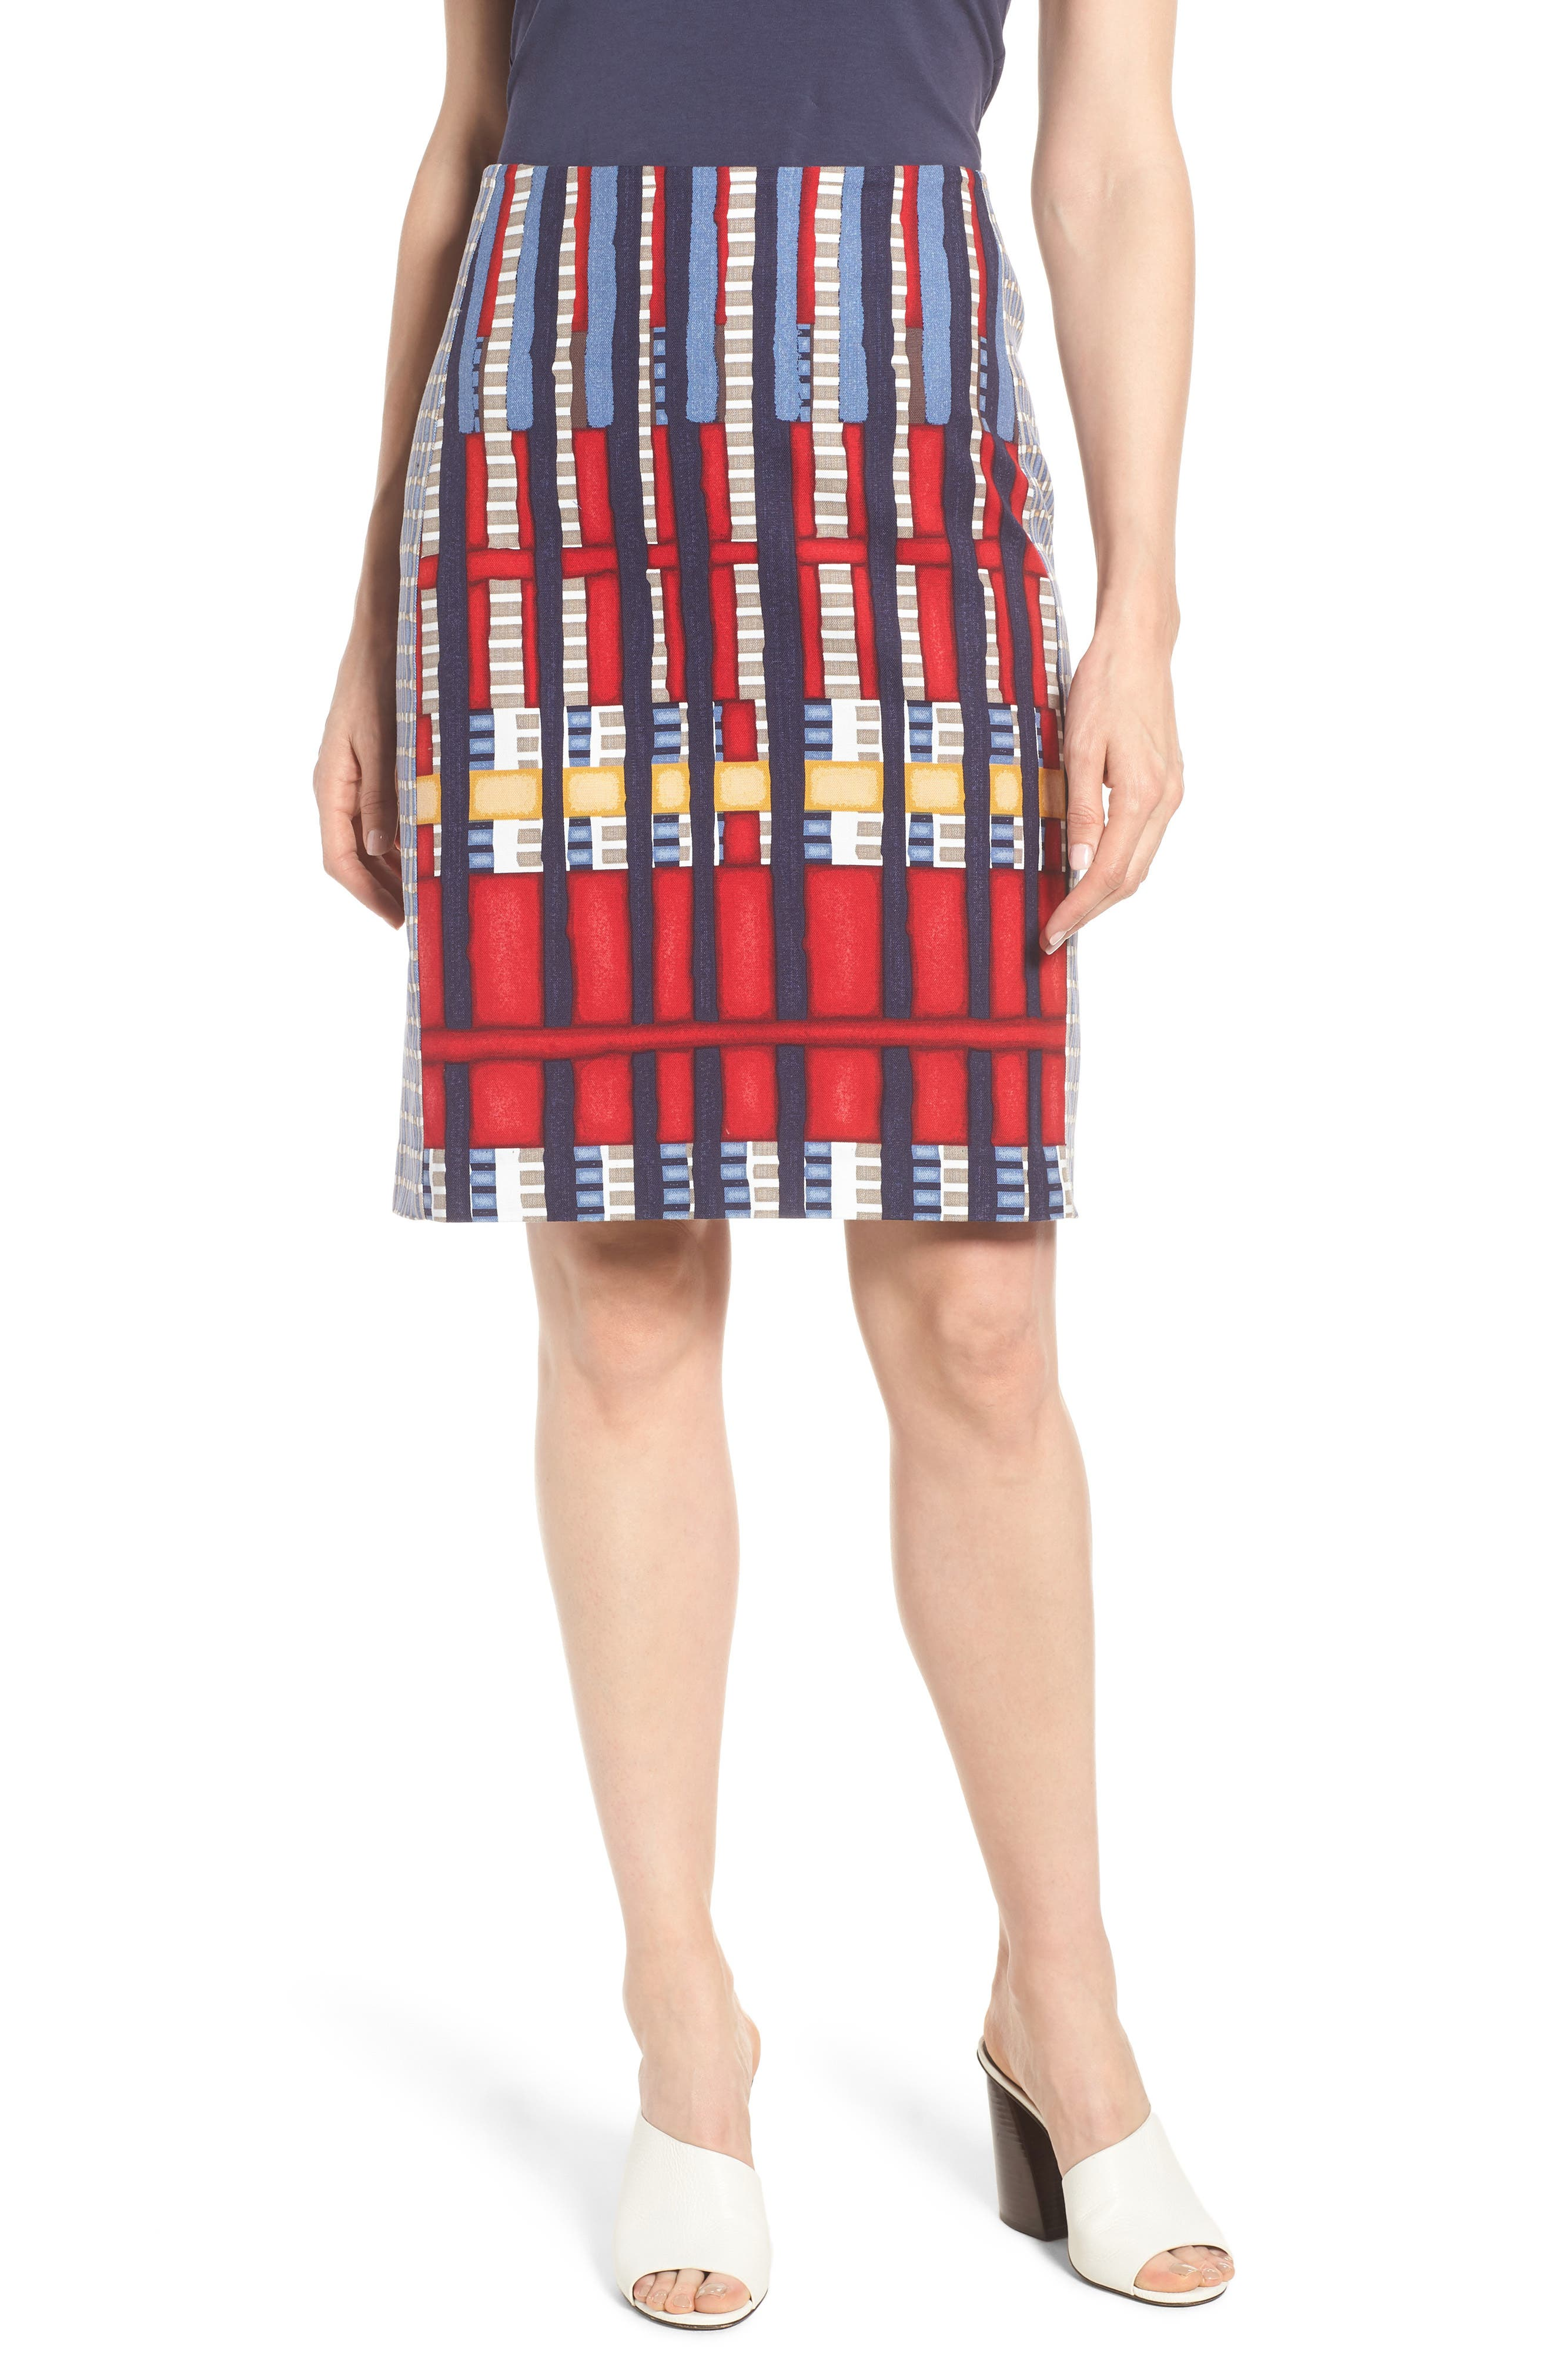 Santiago Hills Block Skirt,                             Main thumbnail 1, color,